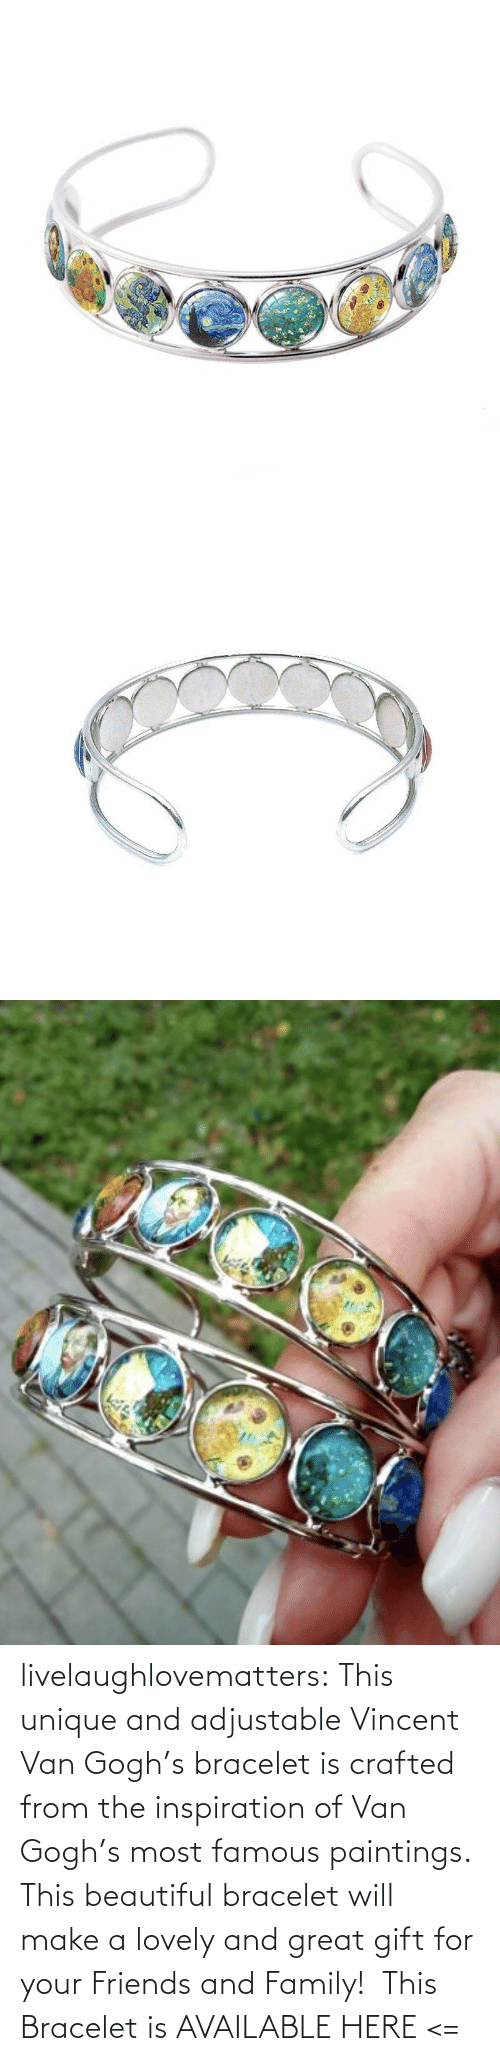 make a: livelaughlovematters: This unique and adjustable Vincent Van Gogh's bracelet is crafted from the inspiration of Van Gogh's most famous paintings. This beautiful bracelet will make a lovely and great gift for your Friends and Family!  This Bracelet is AVAILABLE HERE <=